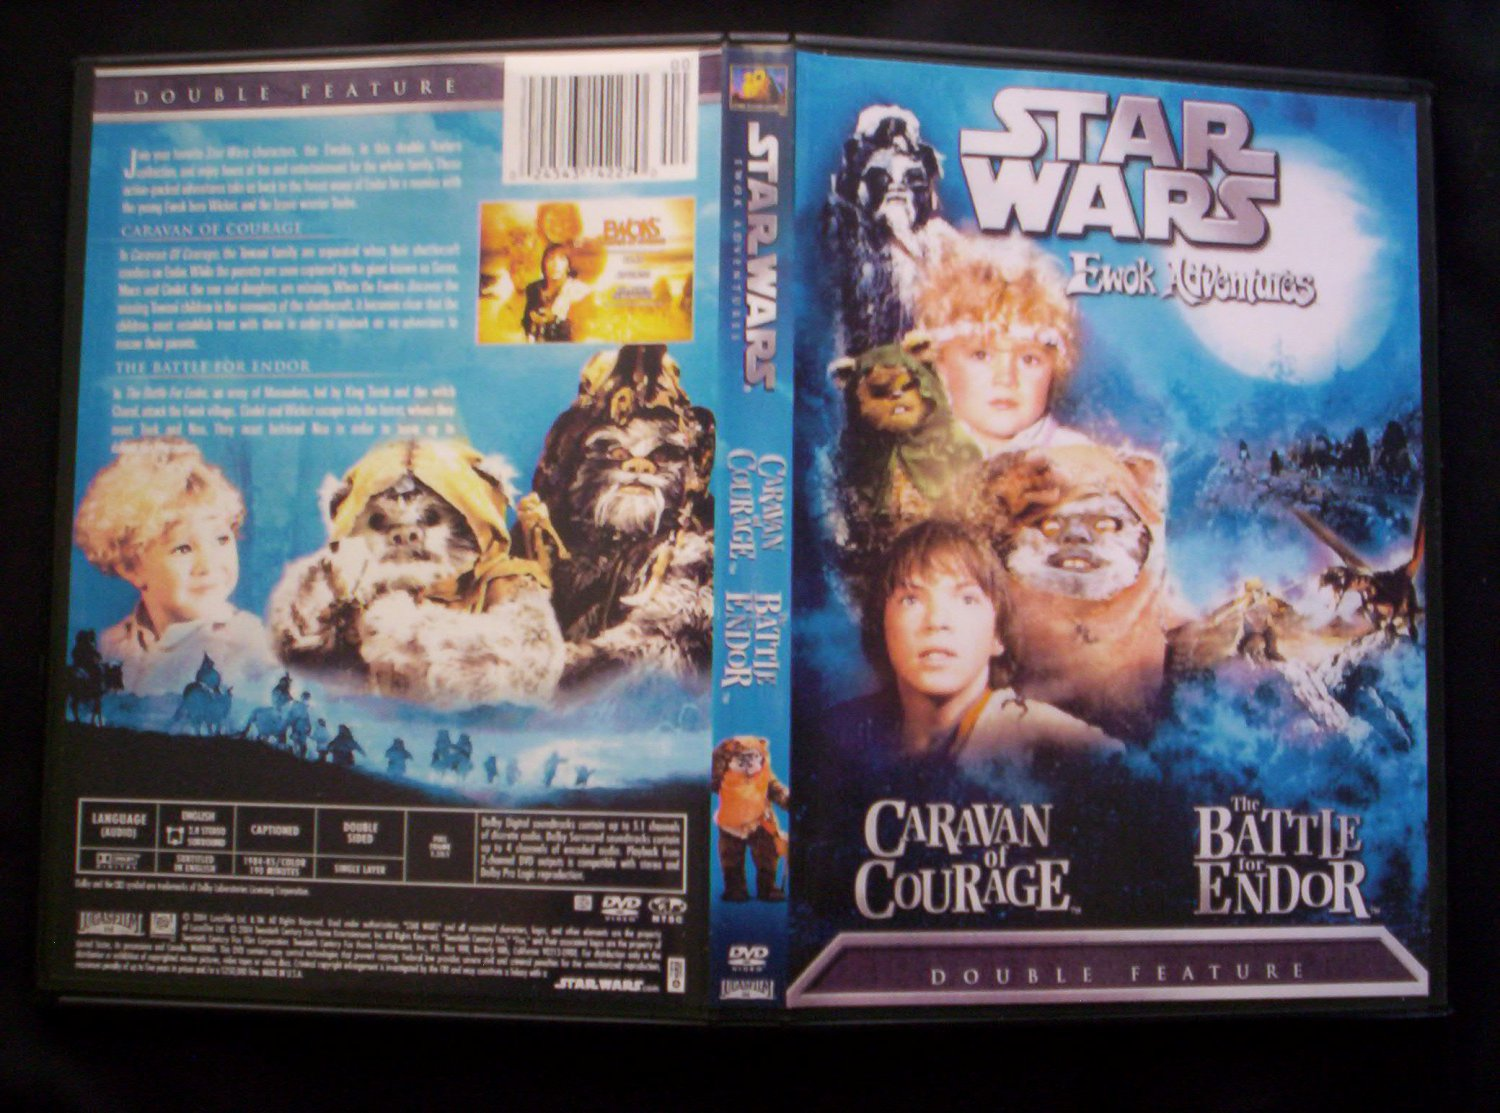 Star Wars Ewok Adventures DVD Two Disc Set